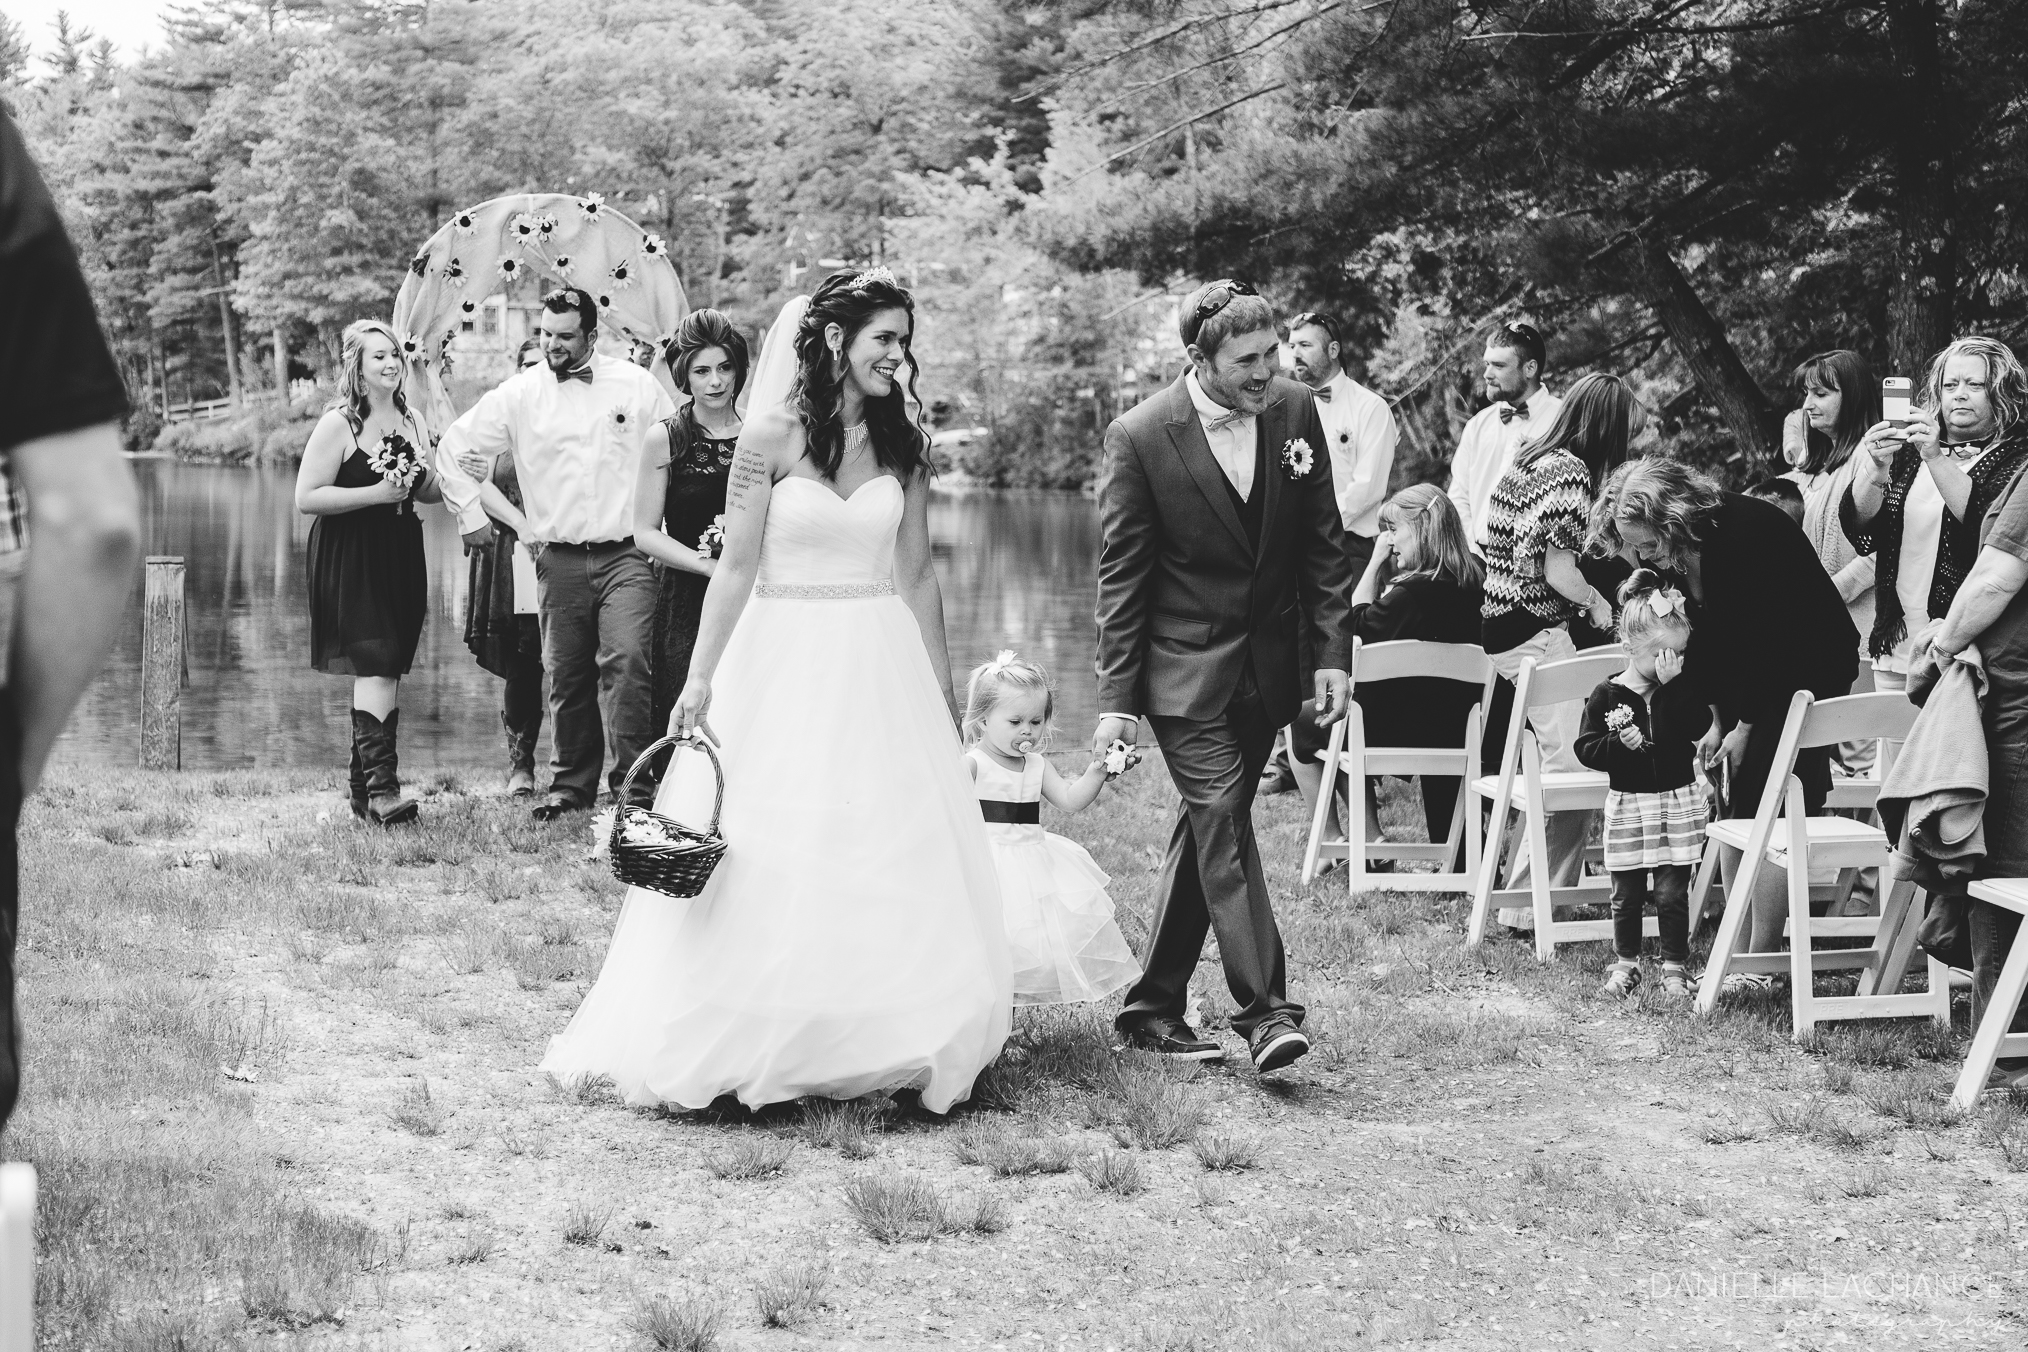 maine-wedding-photographer-rustic-wedding-party.jpg